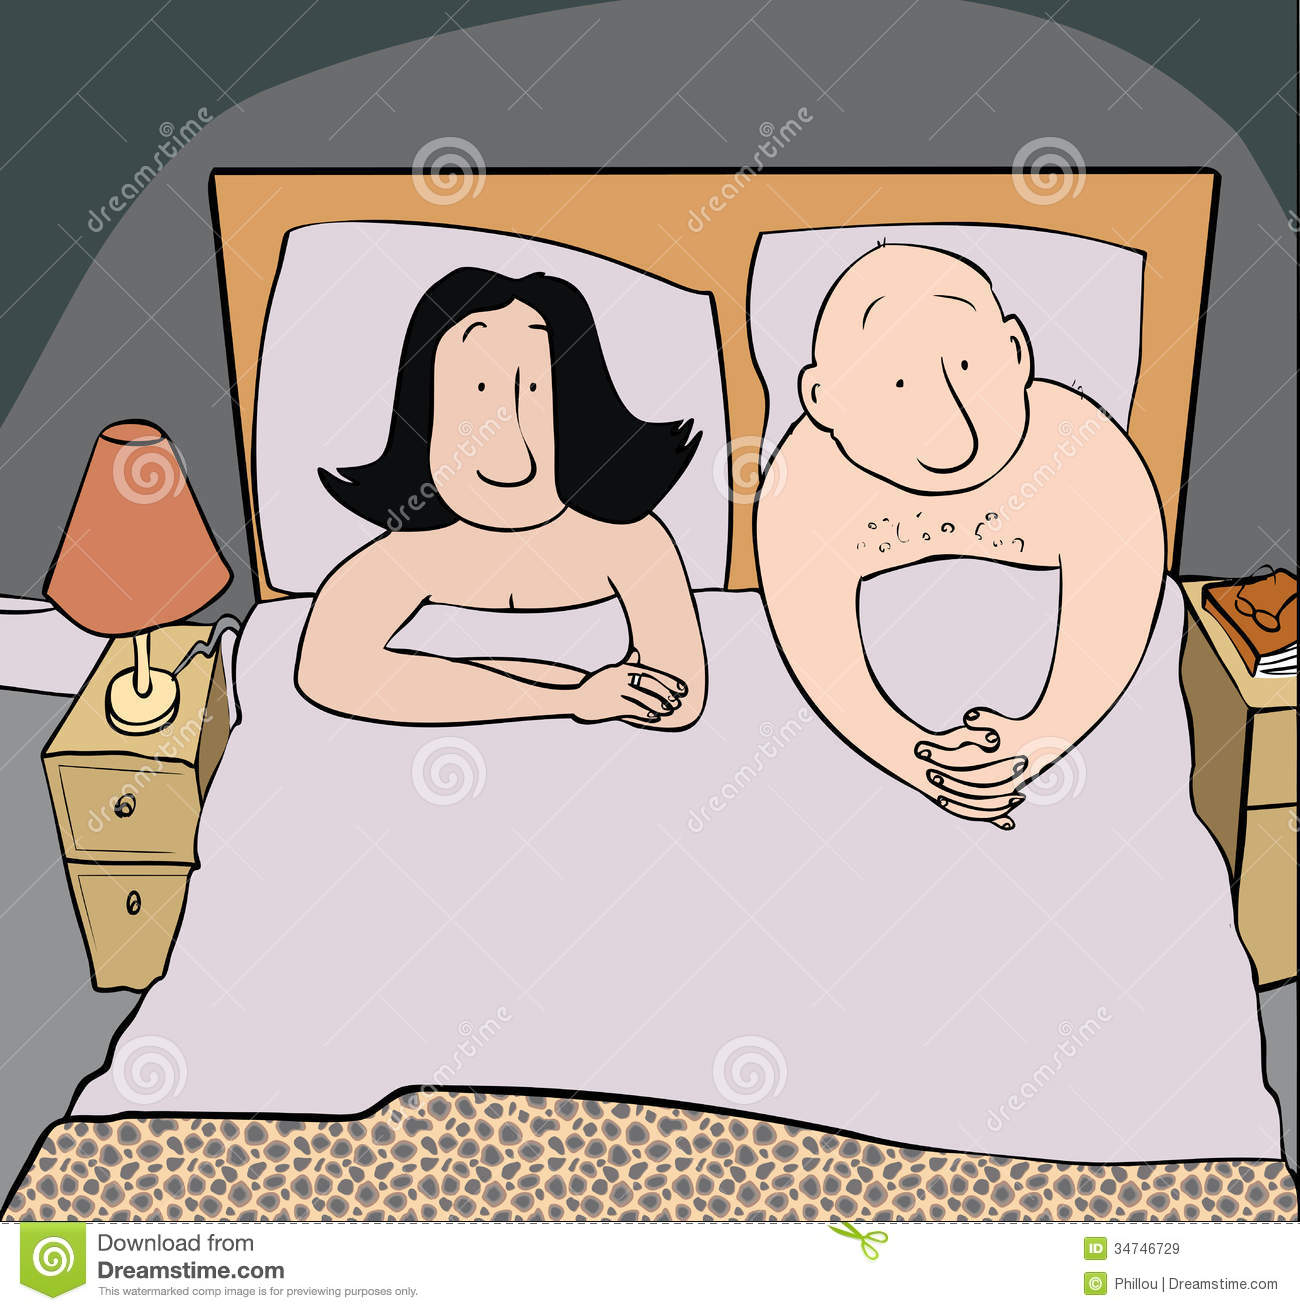 Bedroom Problem Royalty Free Stock Images.